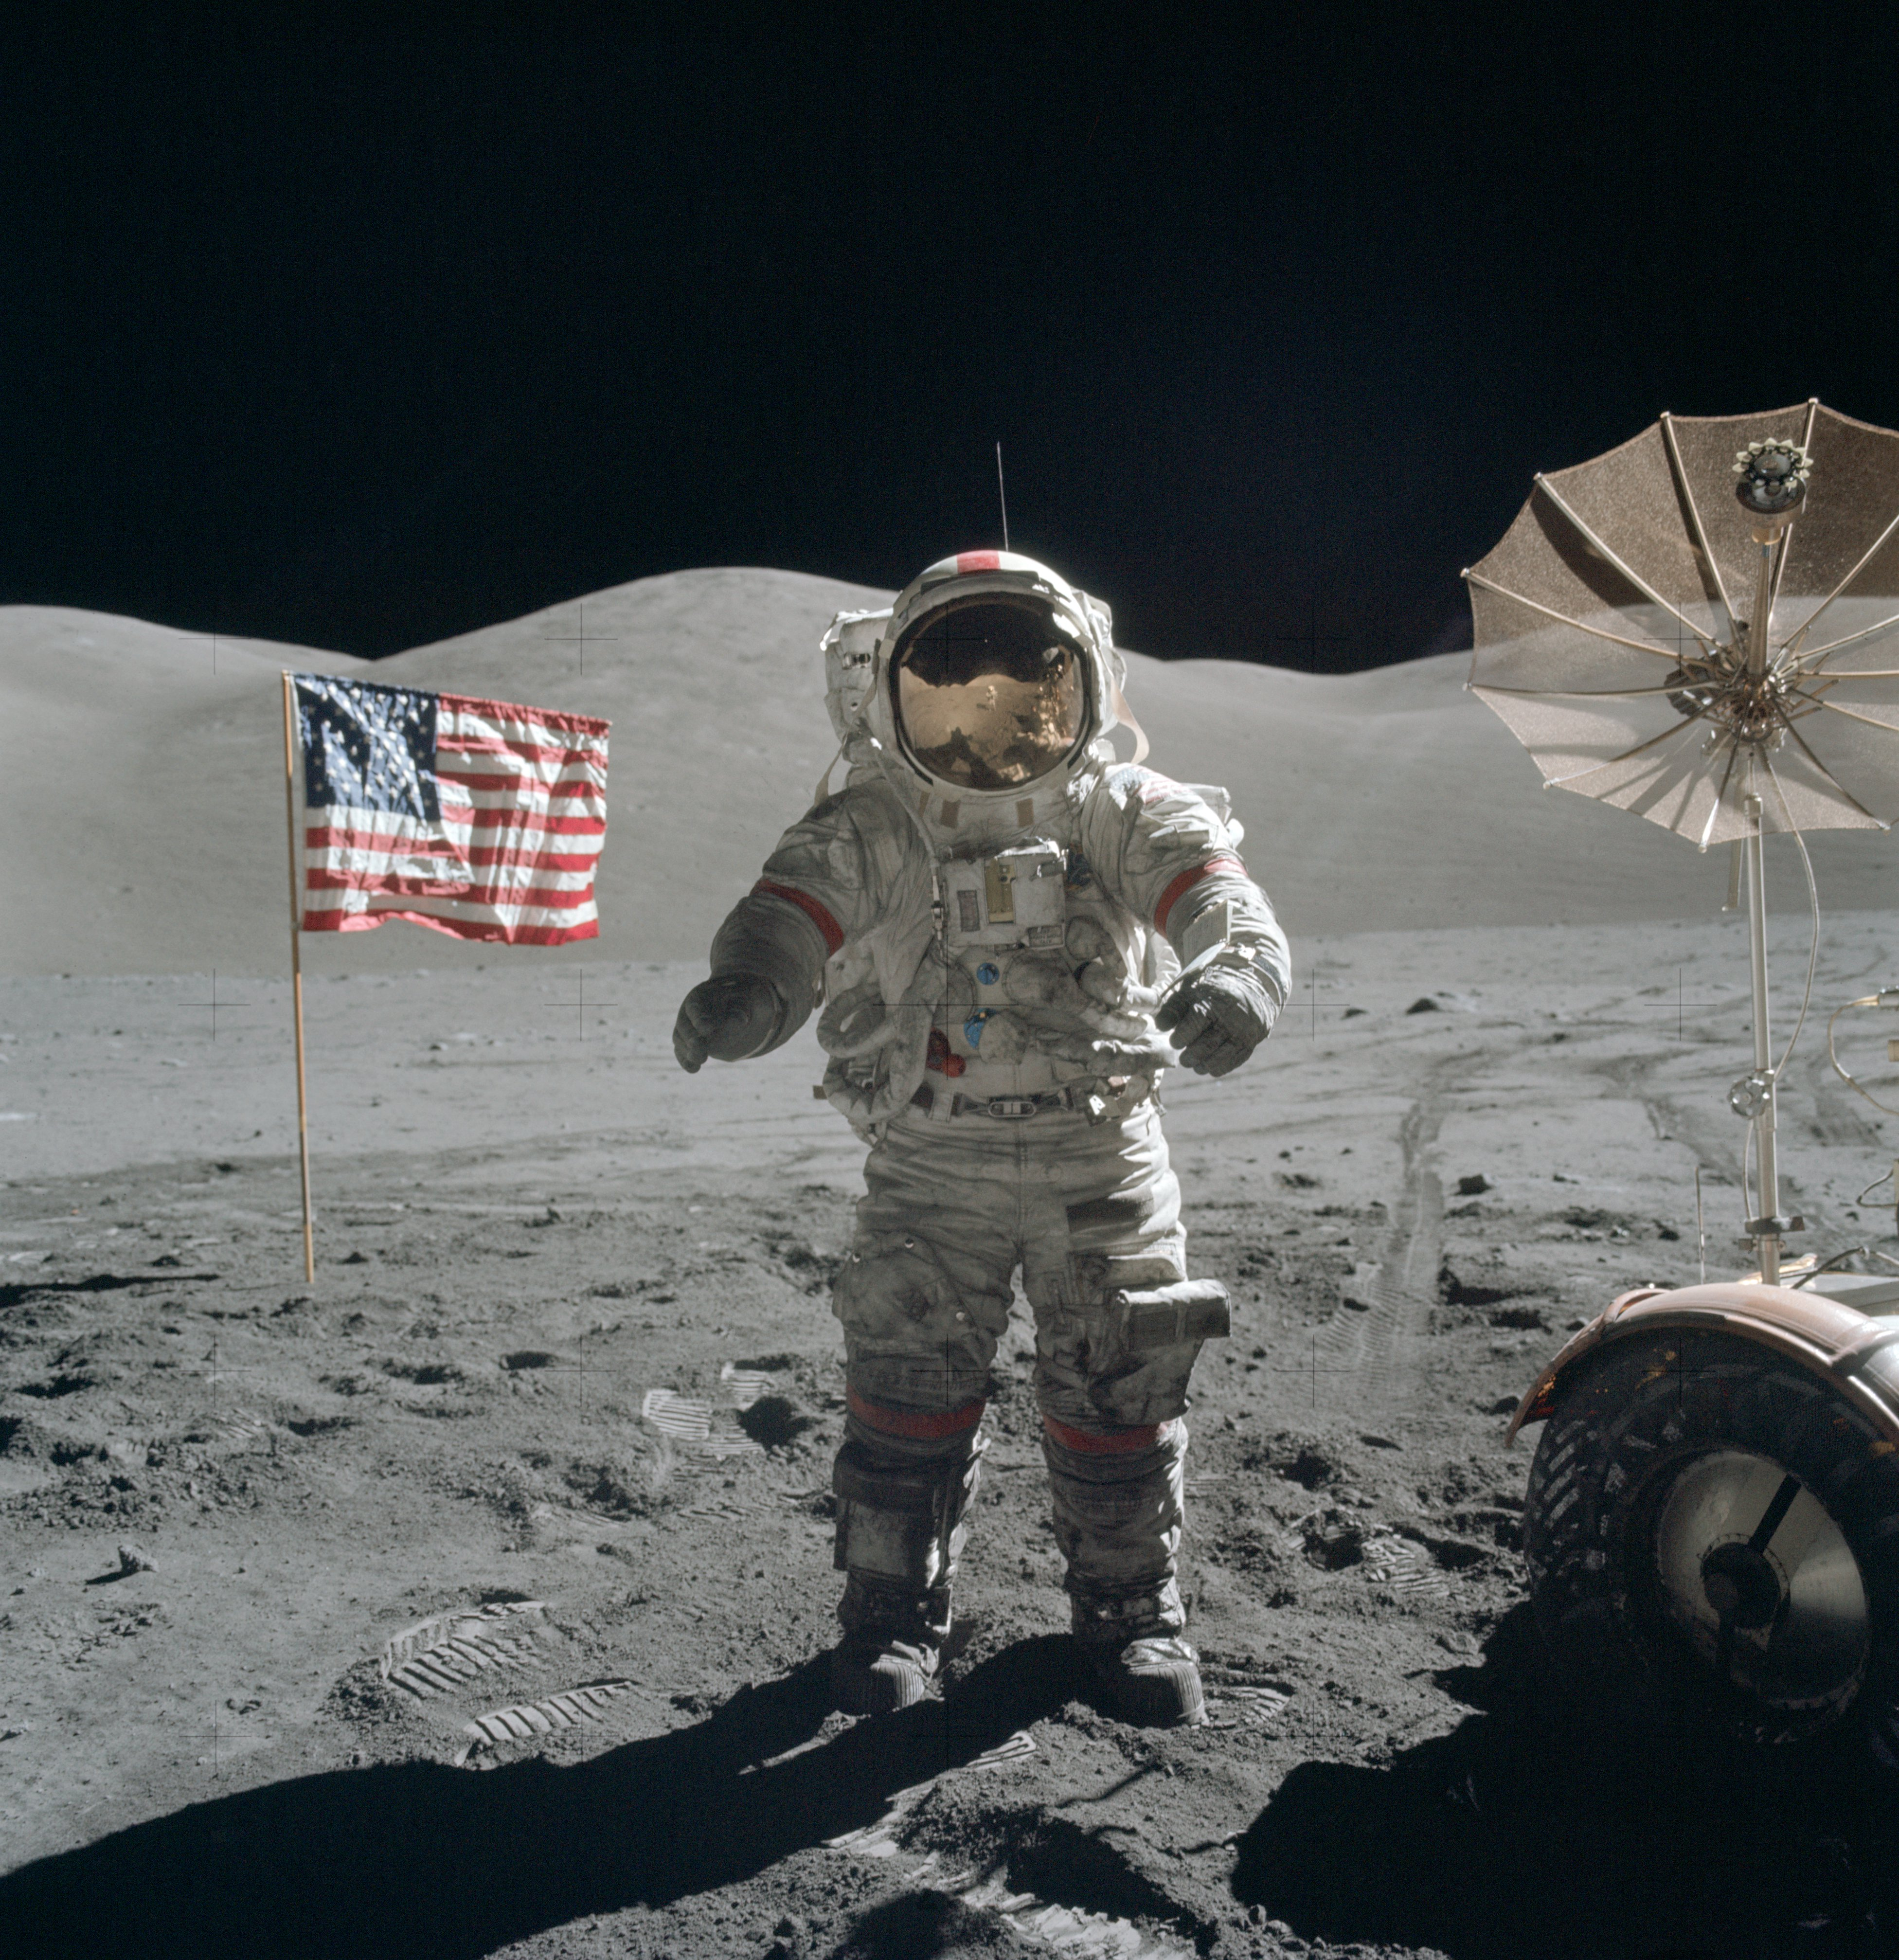 Image of Eugene Cernan on lunar surface, December 13, 1972